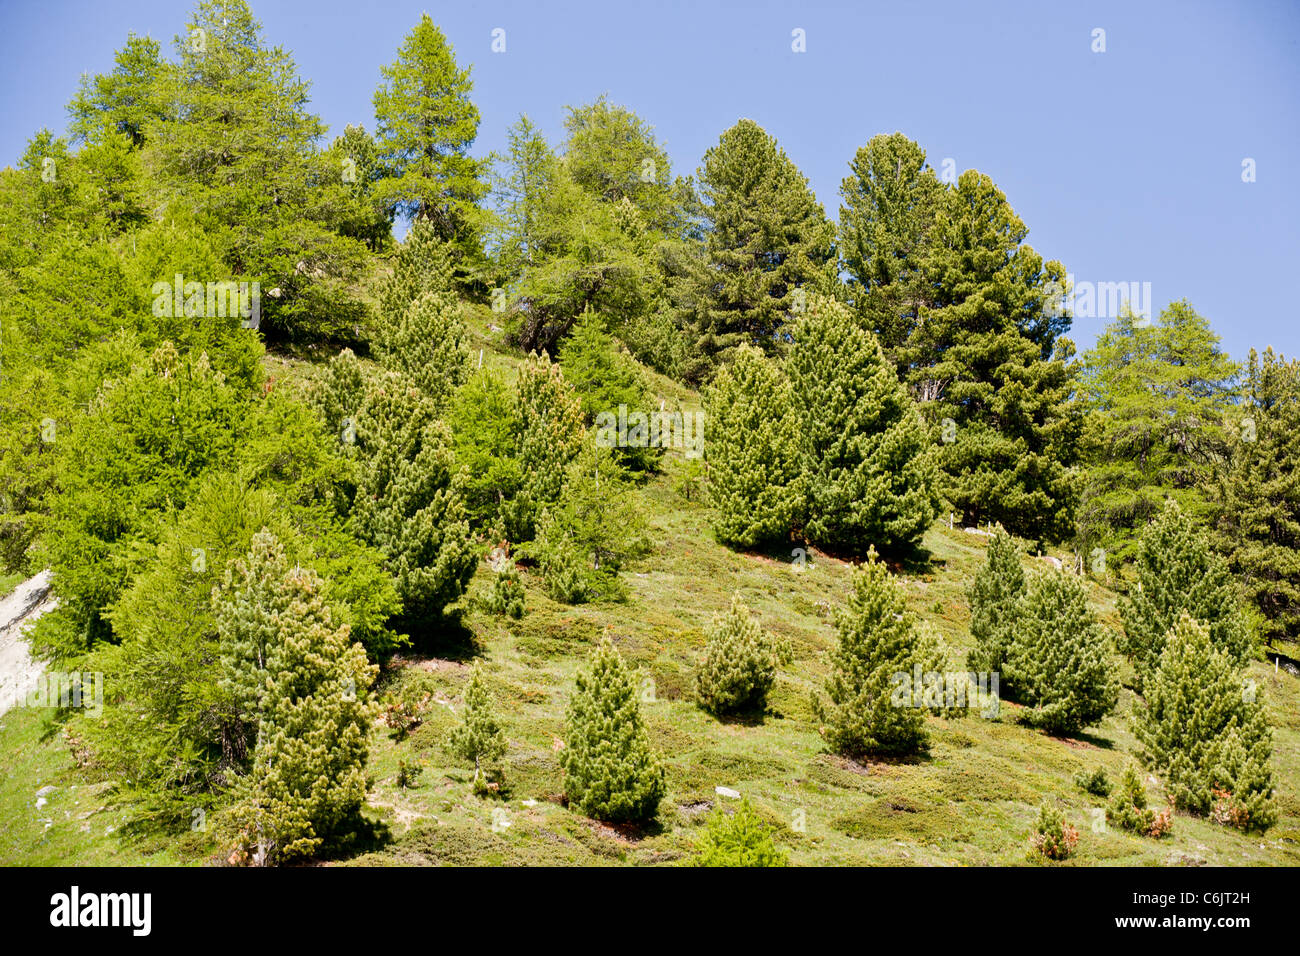 Mixed conifers, Mainly Arolla Pine and Common Larch on acidic mountain slope, Swiss Alps. Stock Photo